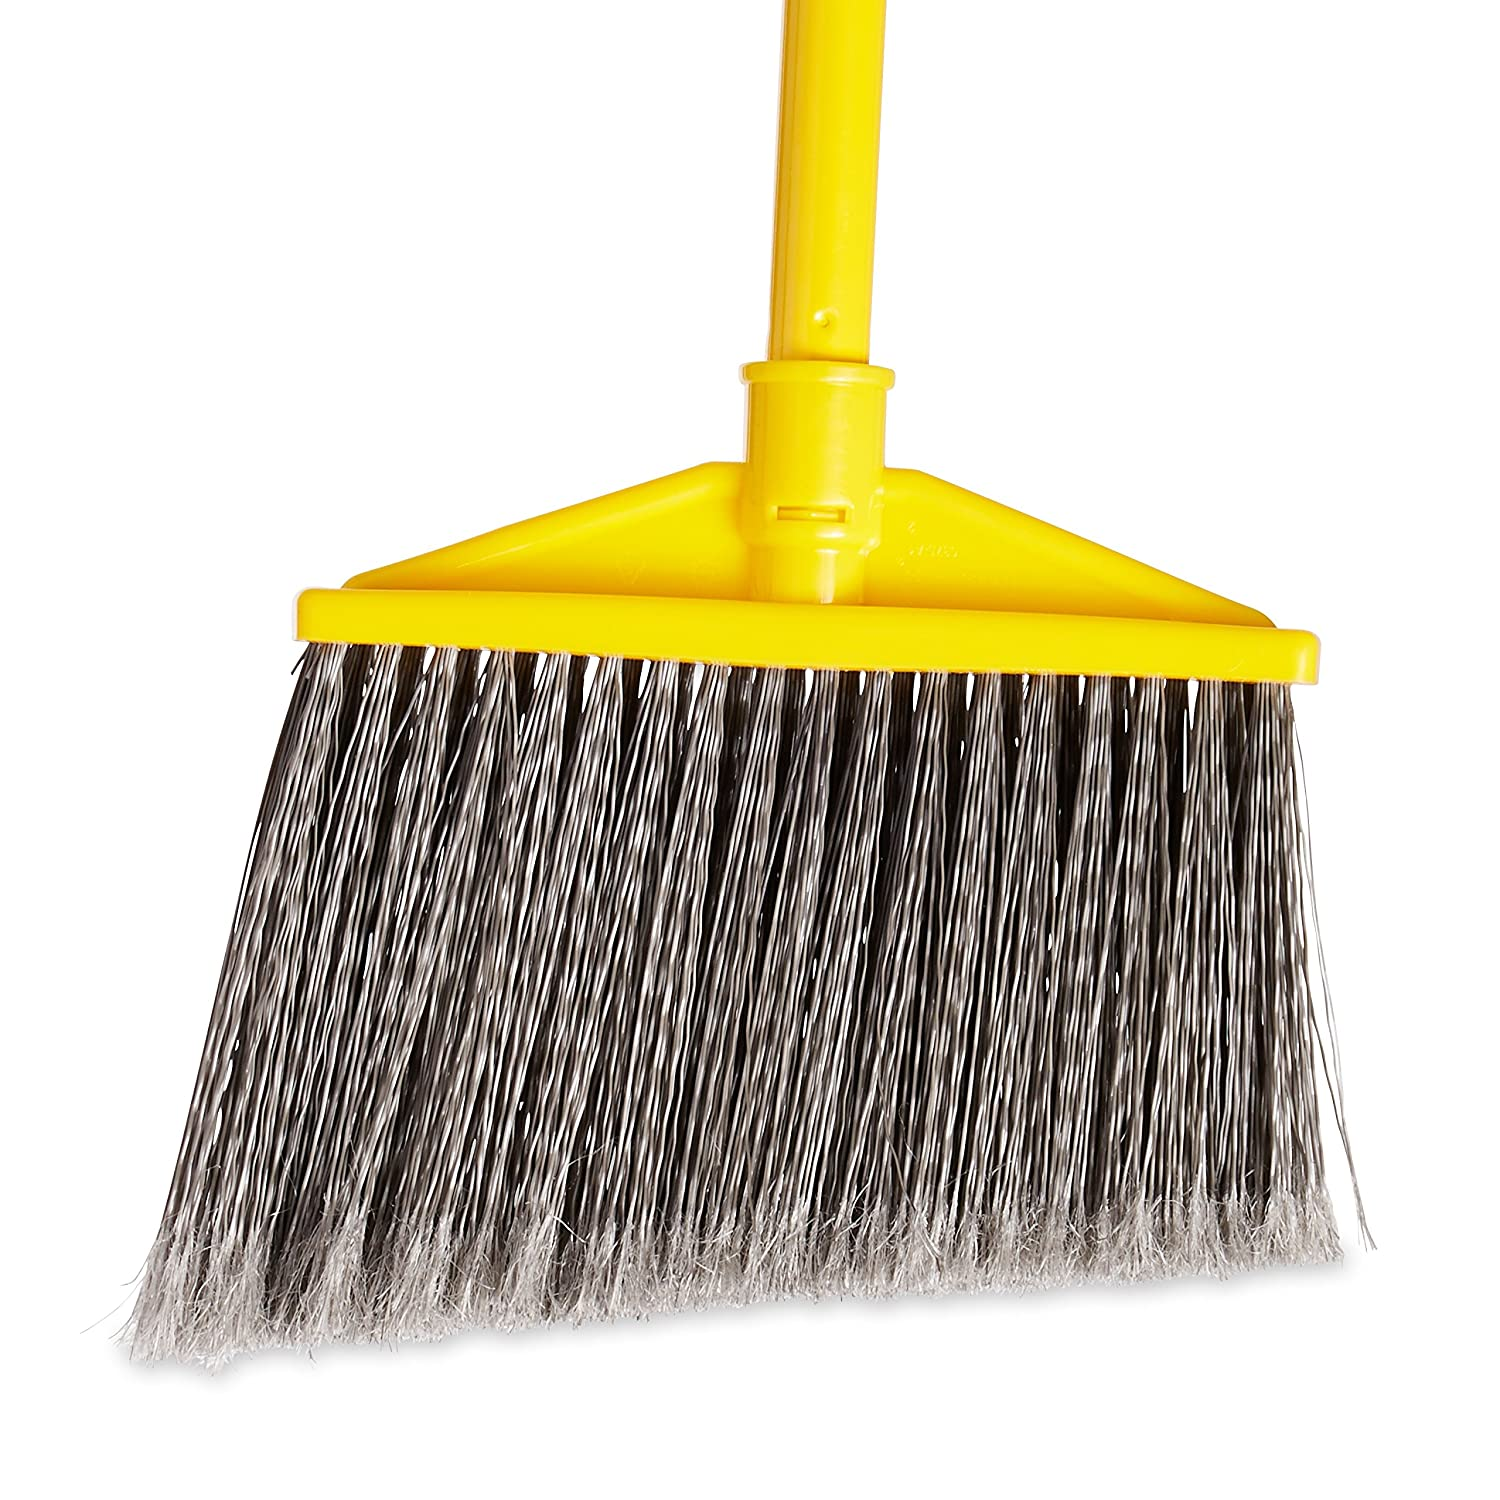 Rubbermaid Commercial Products FG637500GRAY Angled Large Broom with Polypropylene Bristles